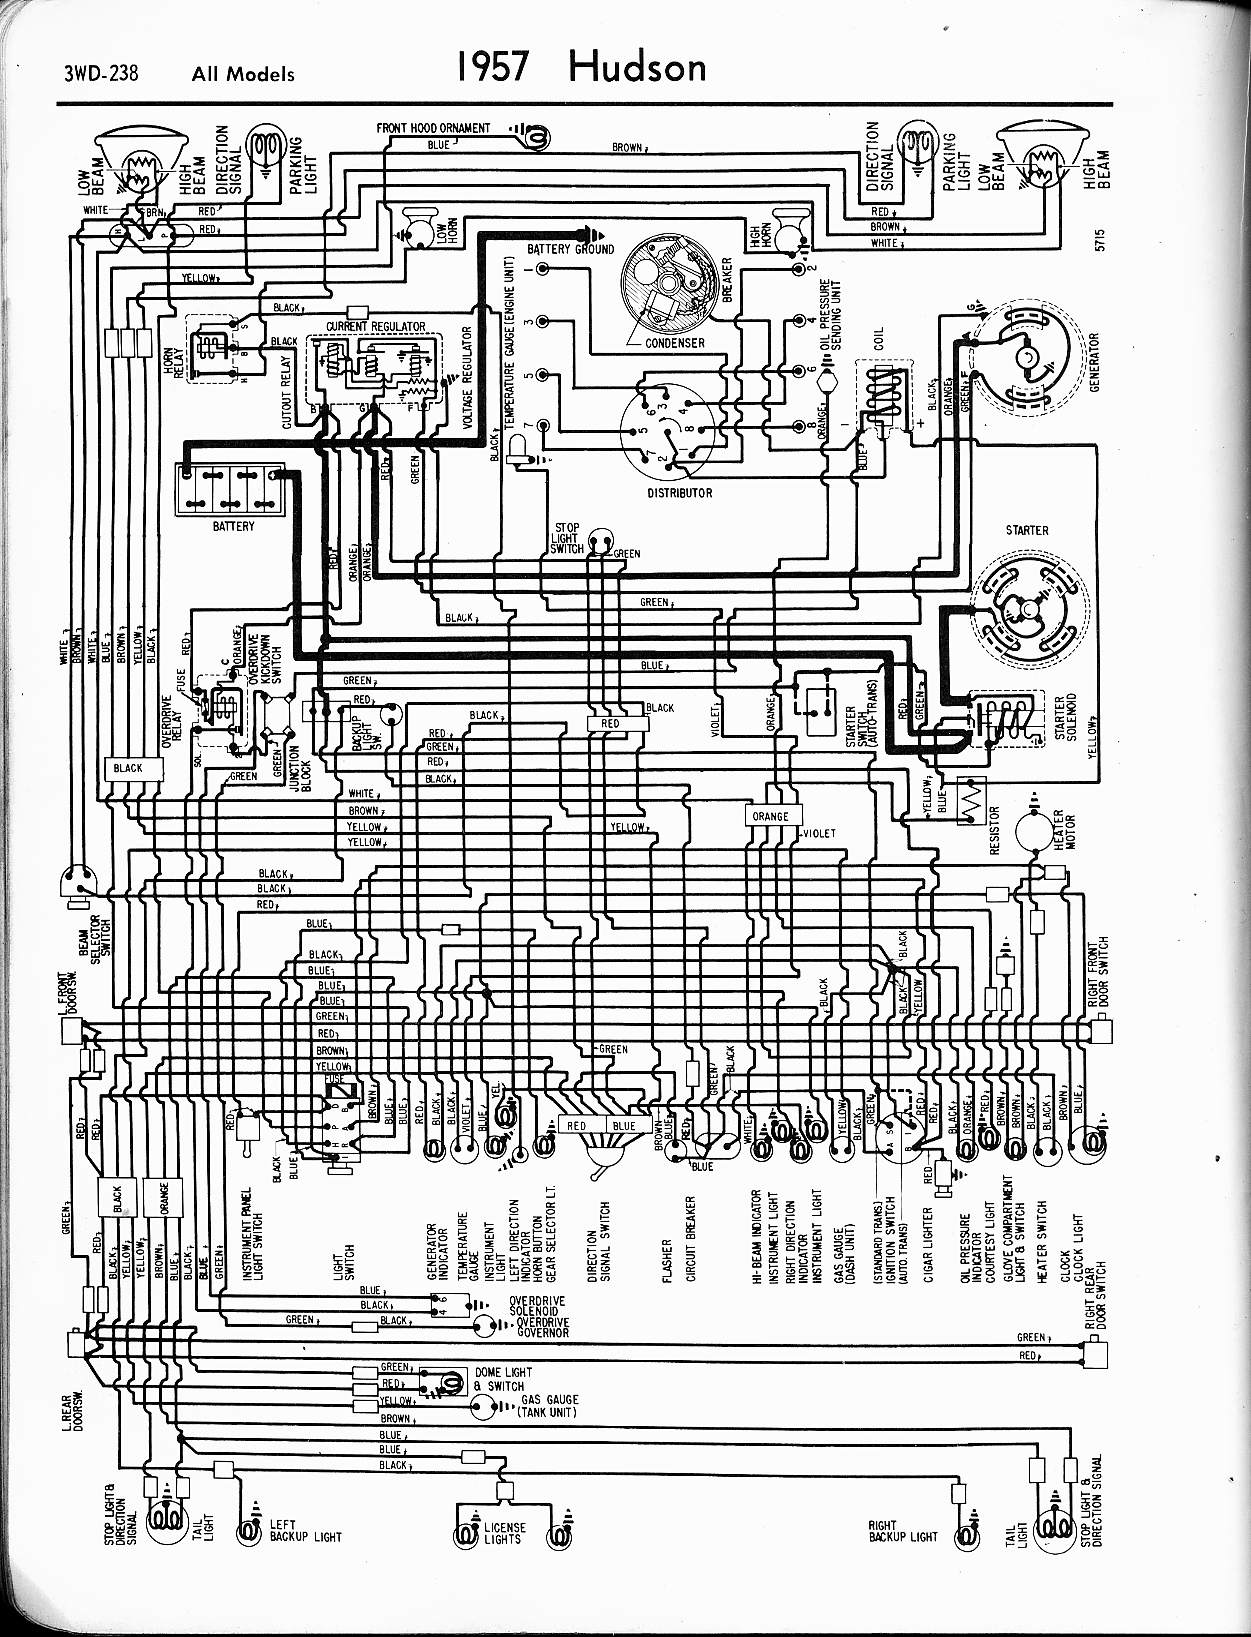 Hudson Wiring Diagrams - Electrical Work Wiring Diagram •